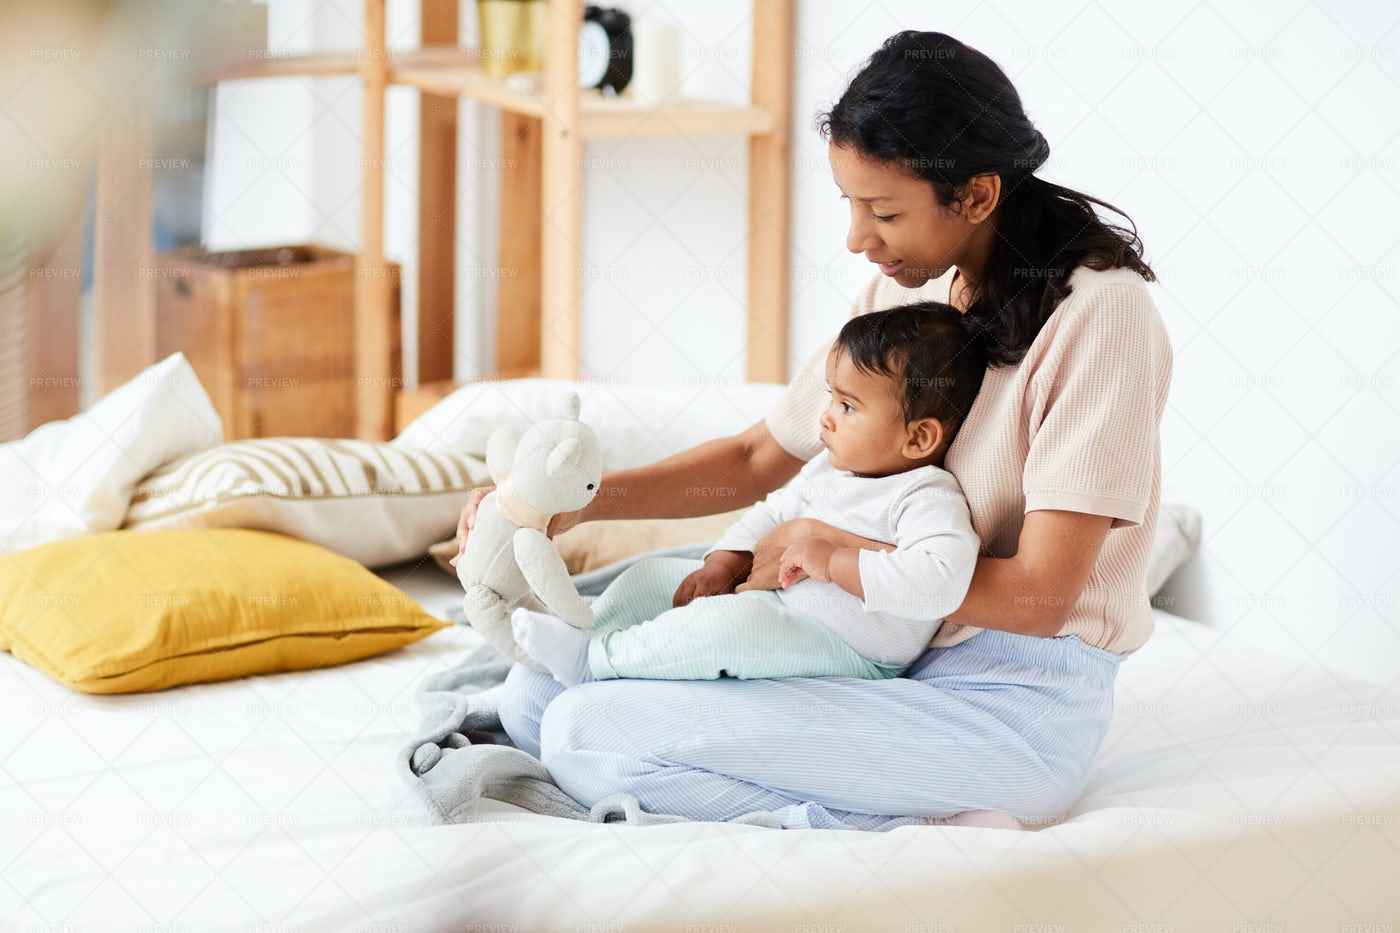 Playing With Her Baby: Stock Photos